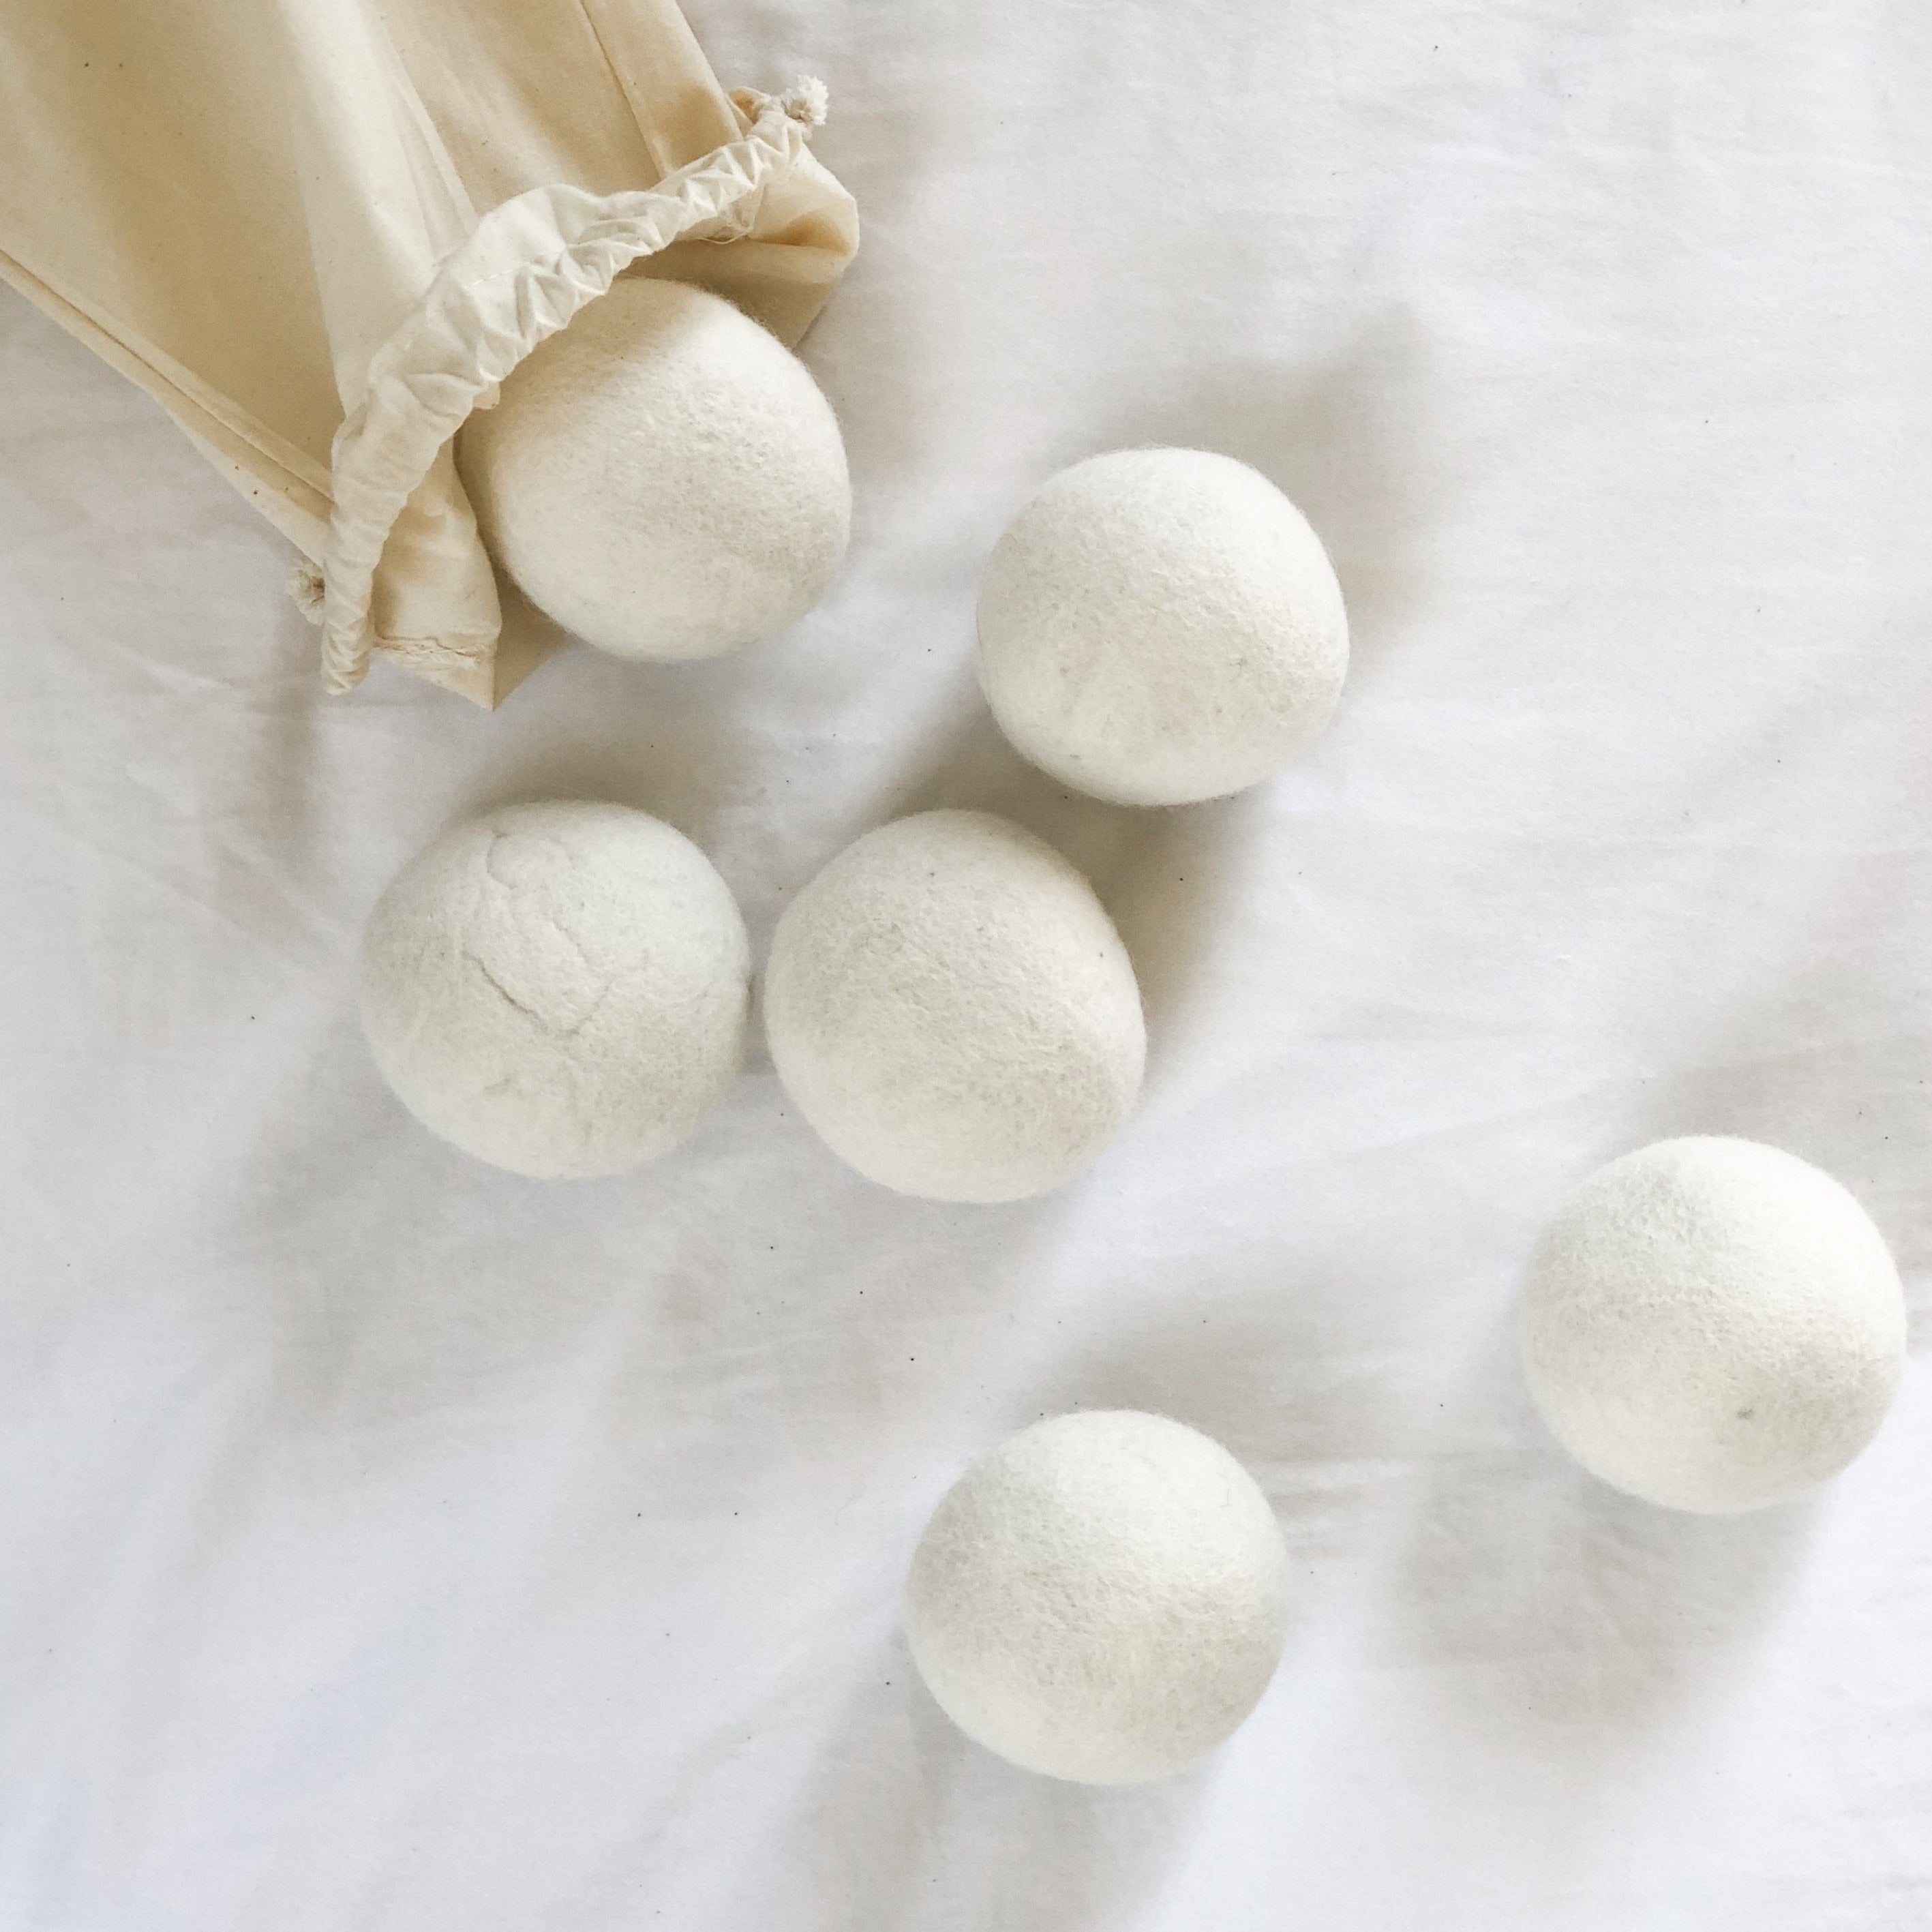 Organic Wool Dryer Rounds - Tofino Soap Company ®